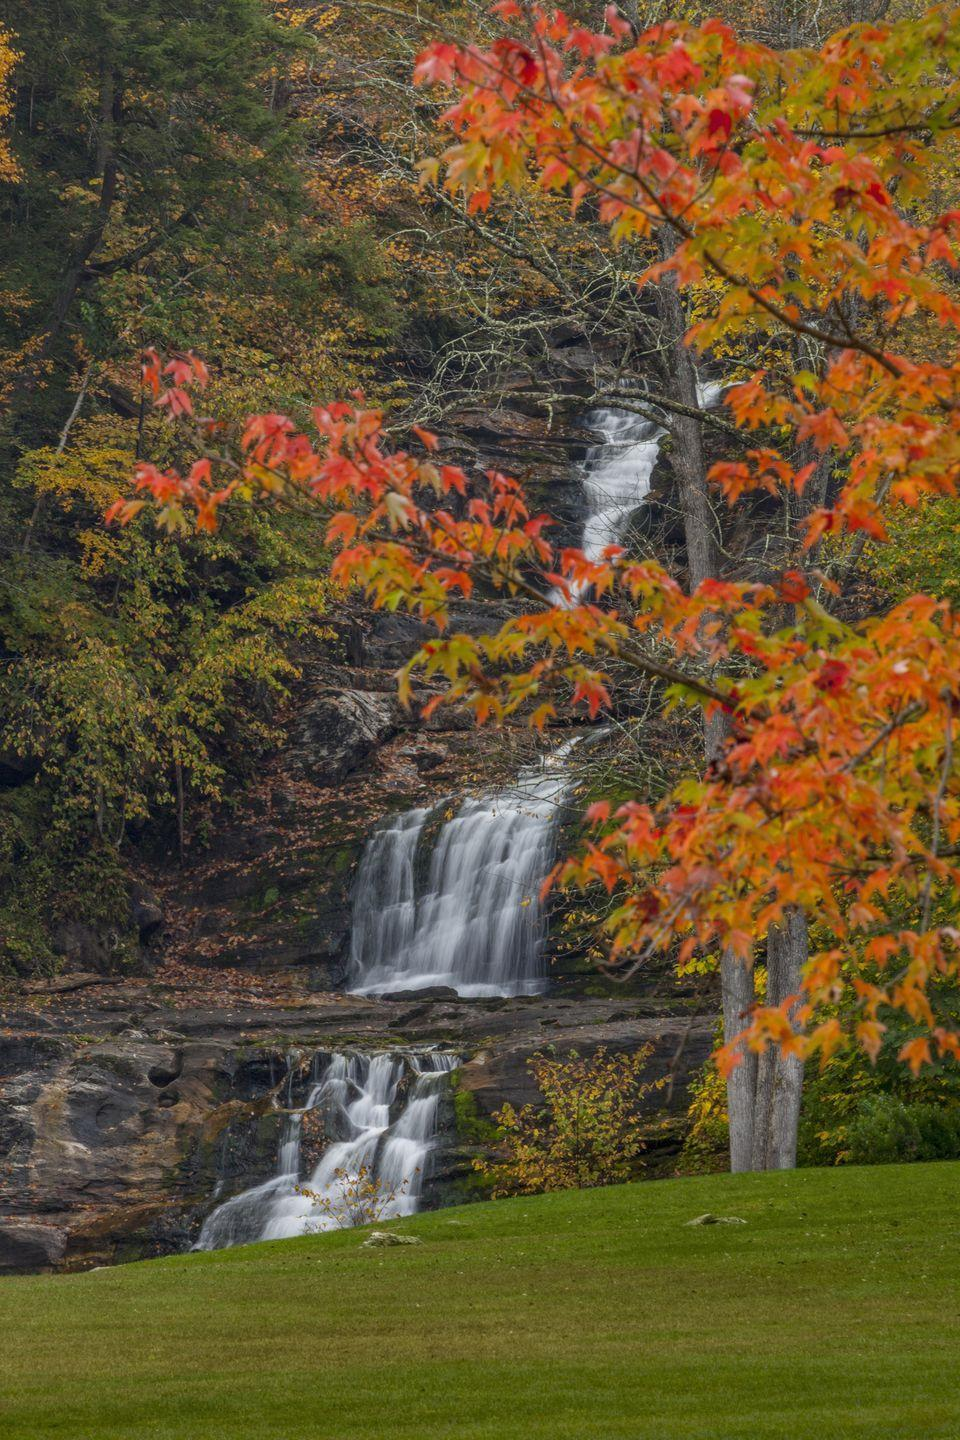 <p>Head west from Litchfield and you'll find yourself at Kent, a picturesque town that offers breathtaking fall foliage during the autumn season — not to mention some of the best hiking trails through Kent Fall State Park or the nearby Macedonia Brook State Park.</p>